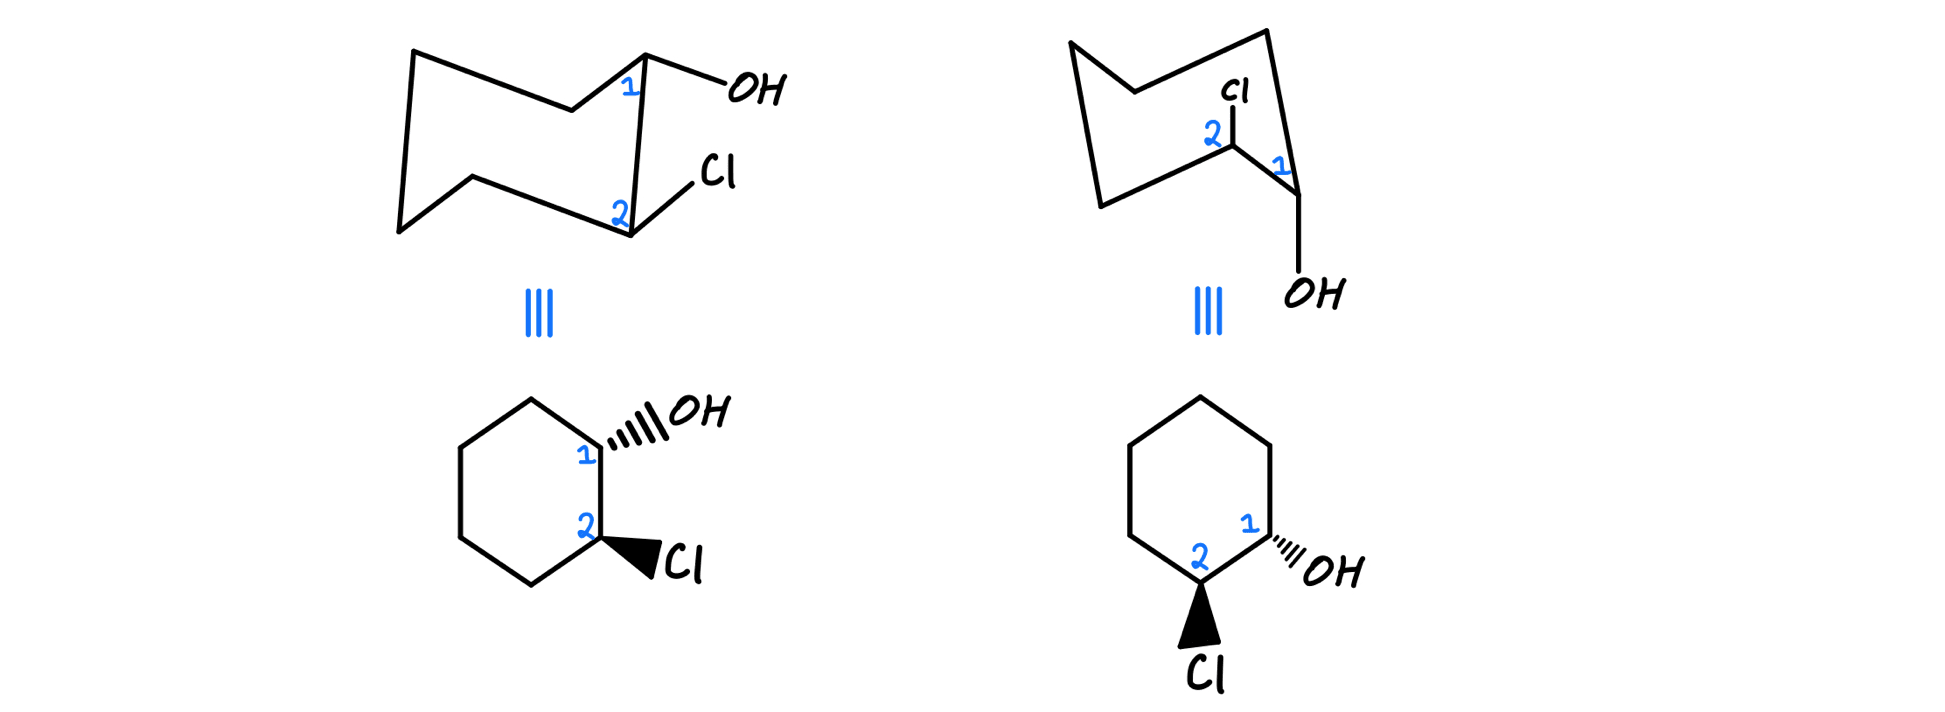 Identical molecules